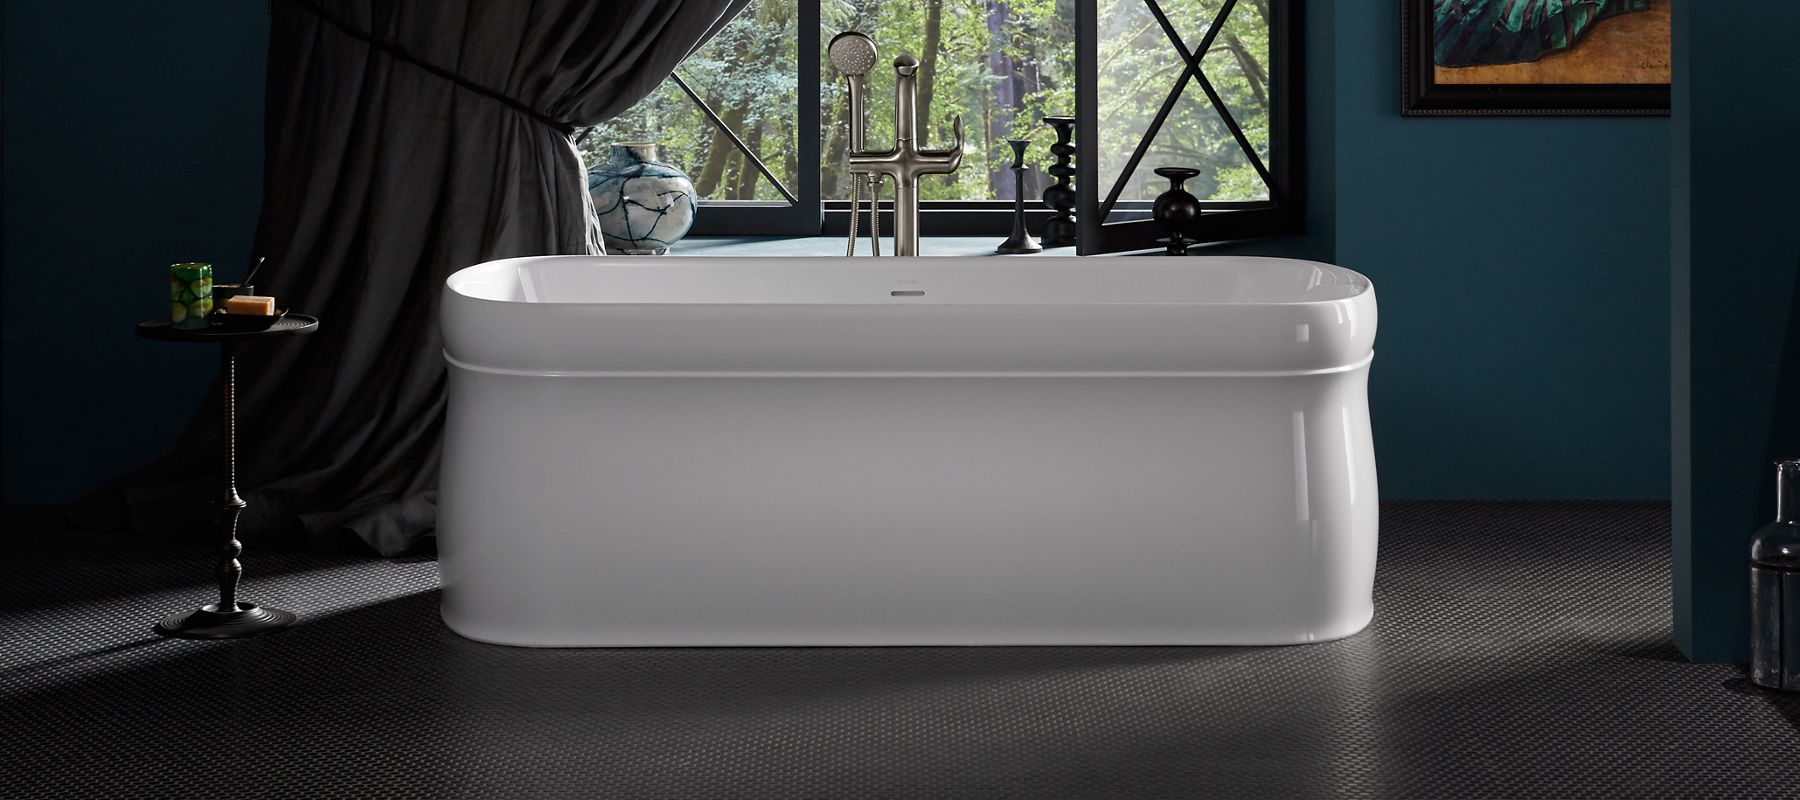 Freestanding Bathtubs, Whirlpool, Bathing Products | Bathroom | KOHLER